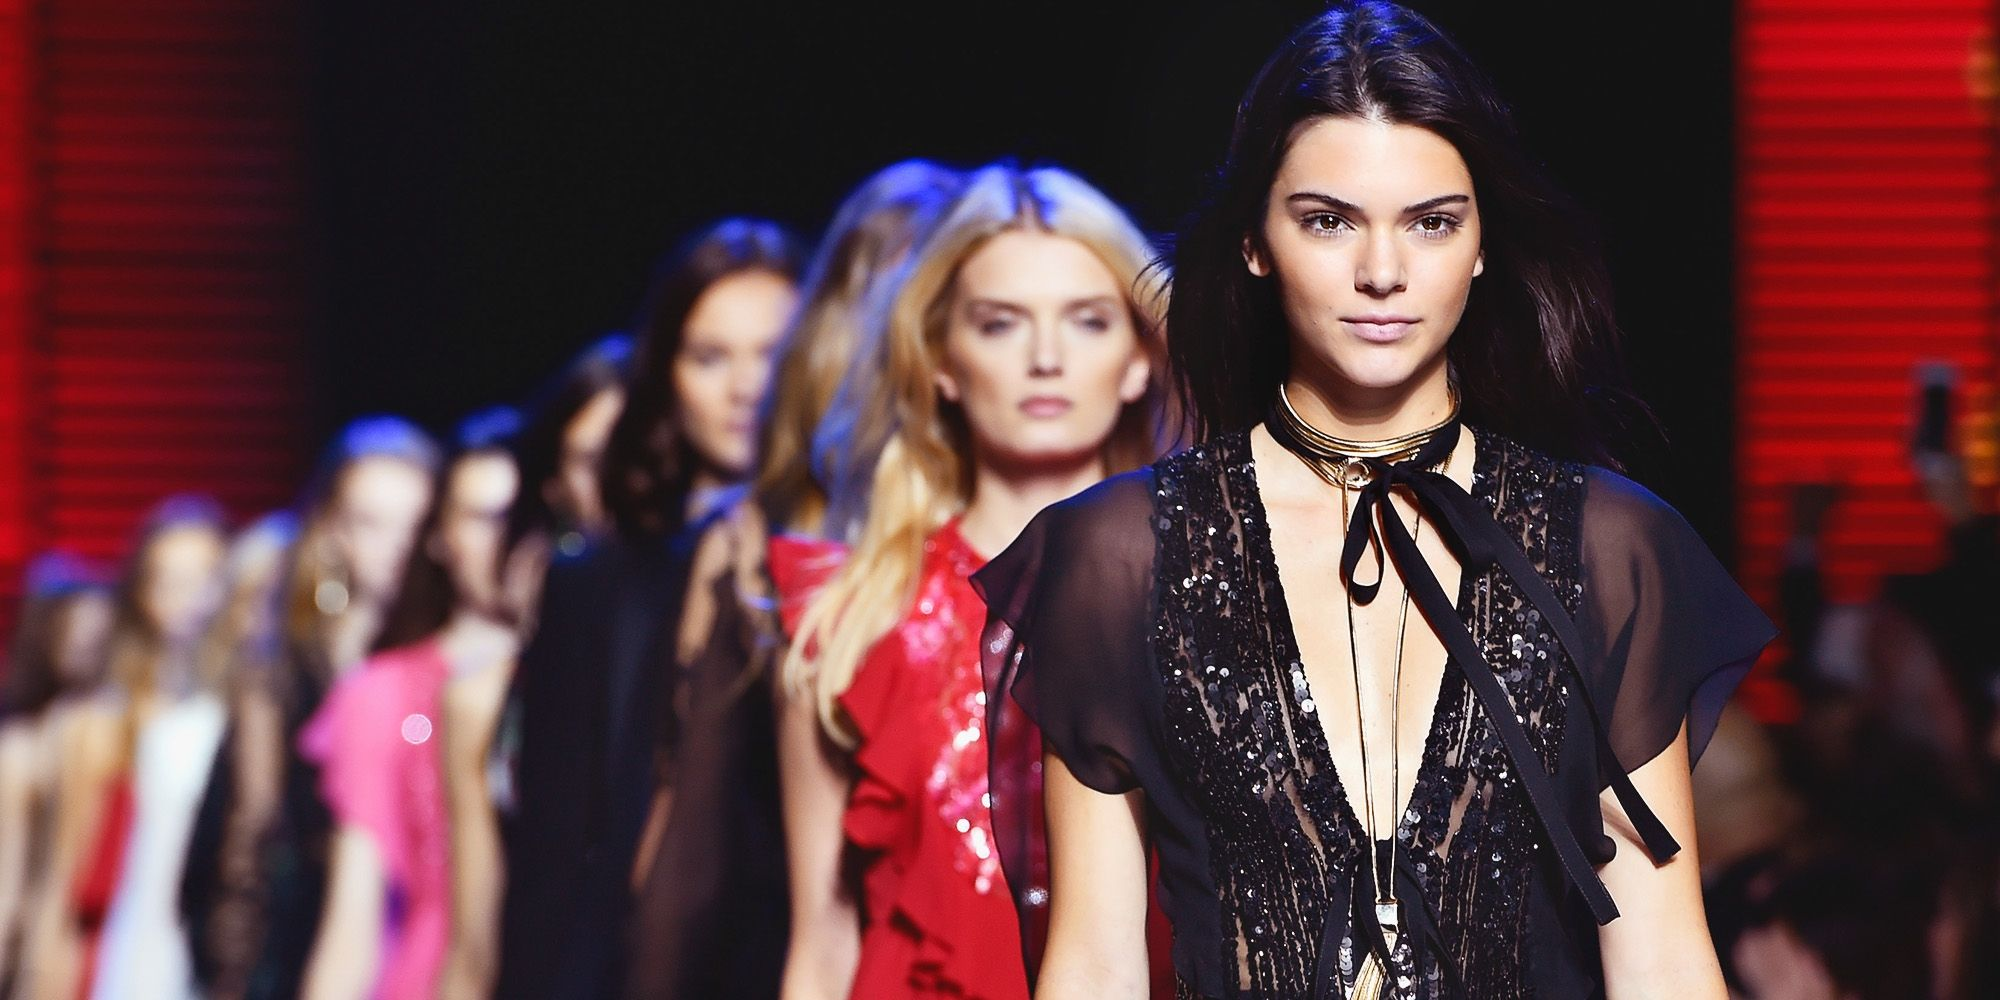 elle-kendall-jenner-to-win-fashion-icon-of-the-decade-award-1504114086